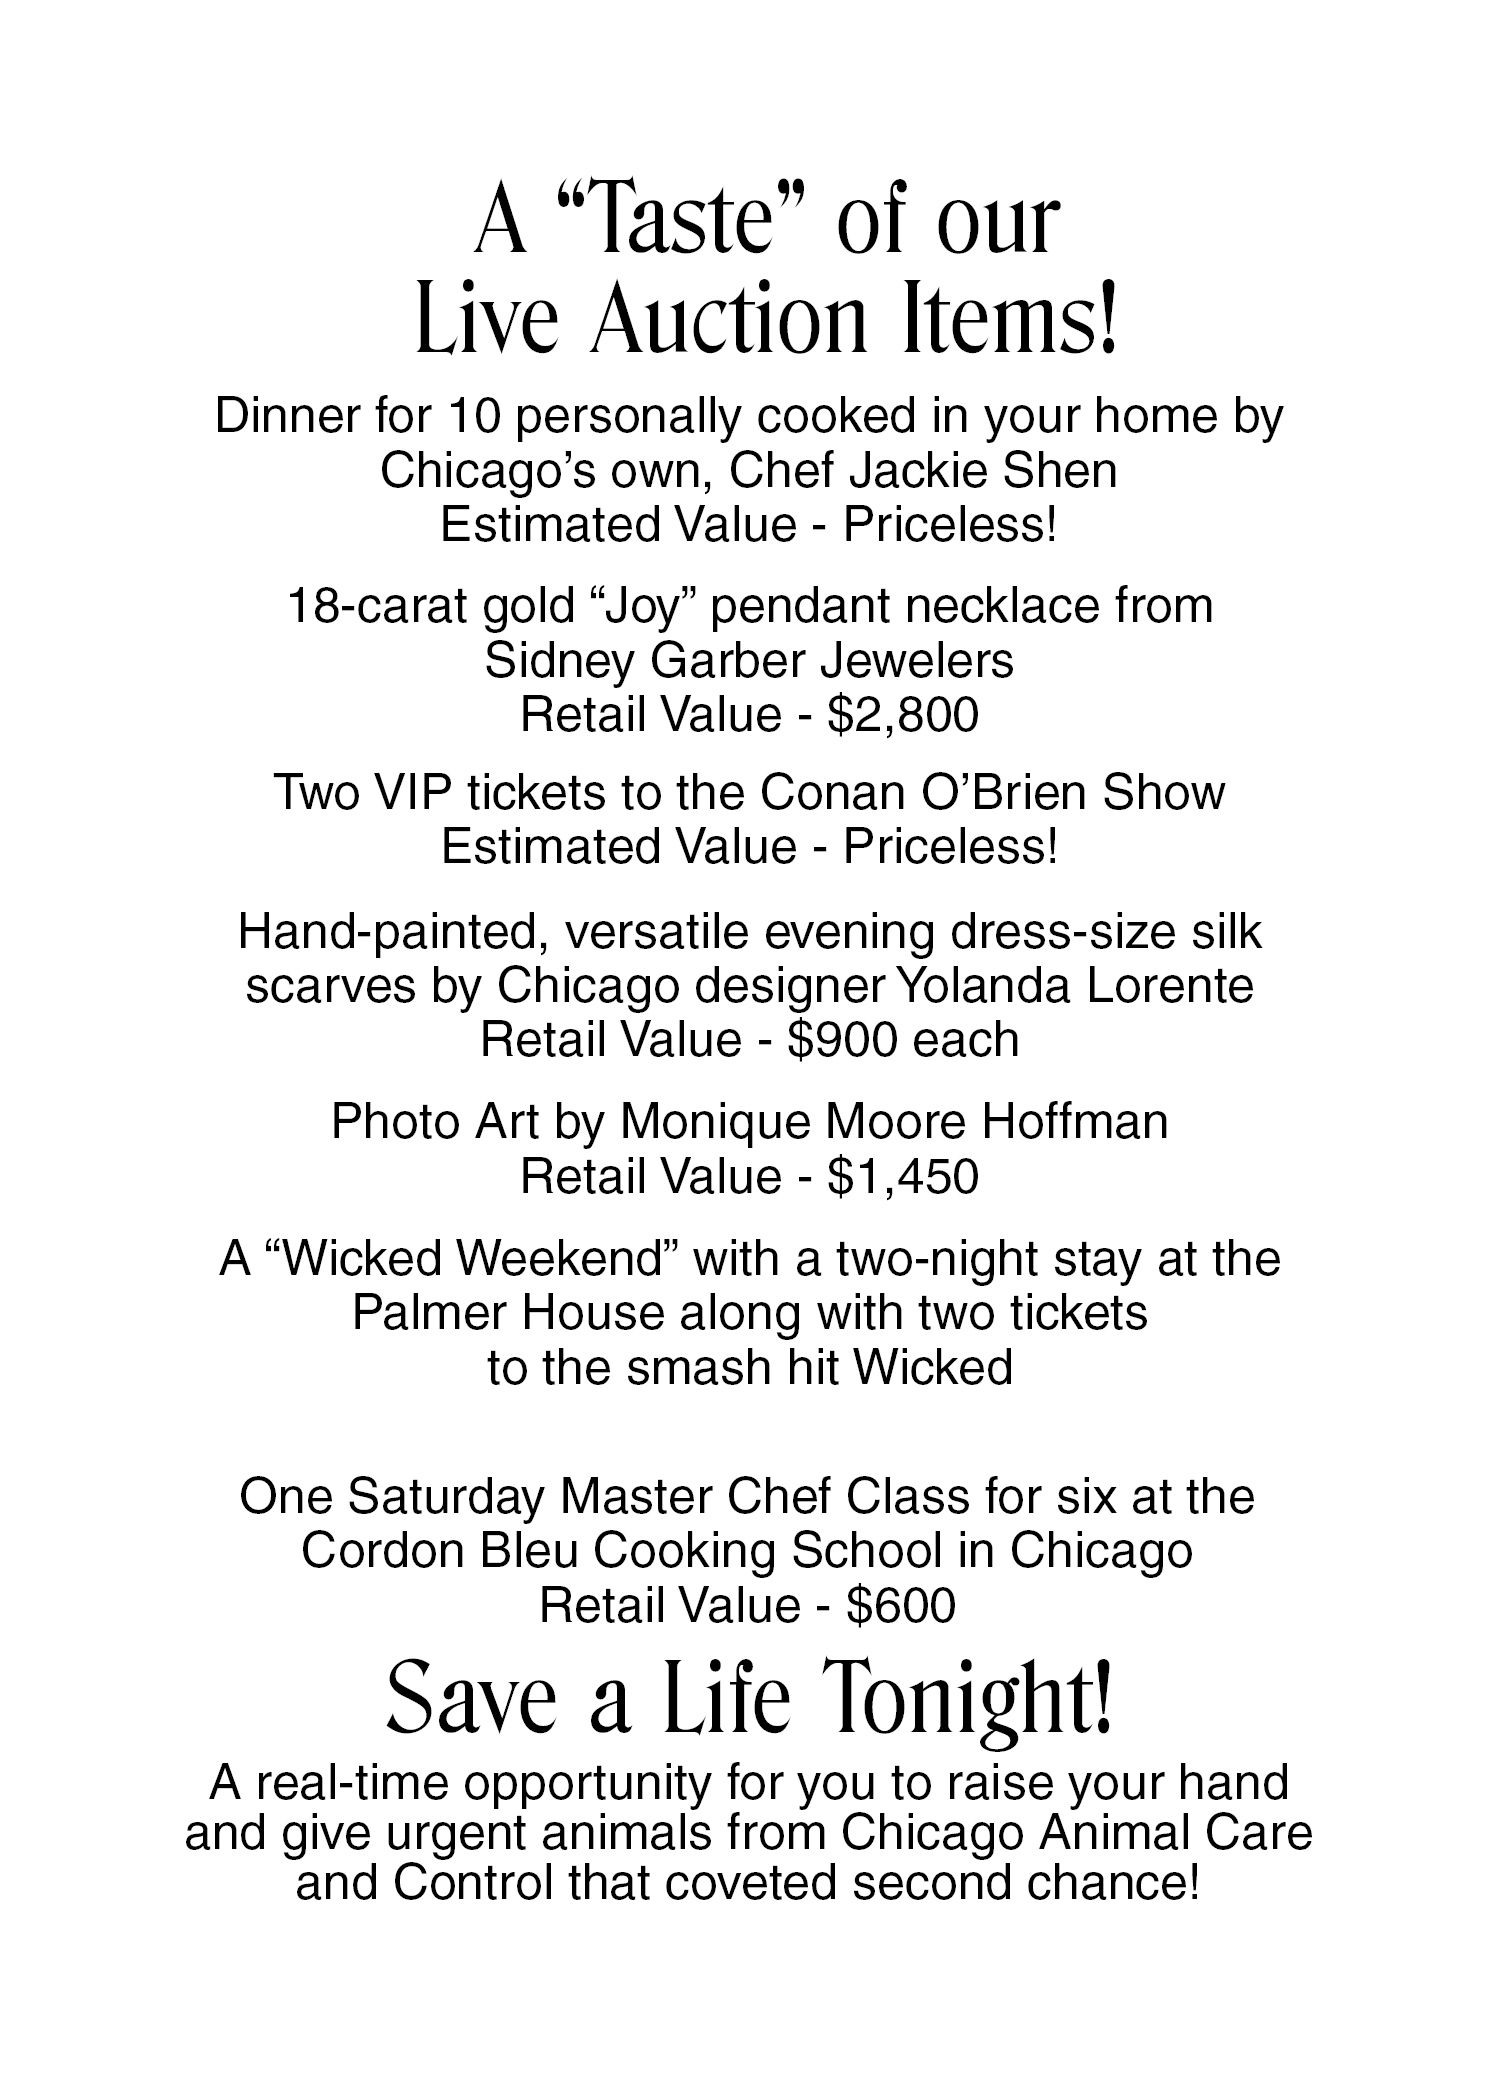 Live Auction Ideas For Charity Events  Silent Auction Ideas